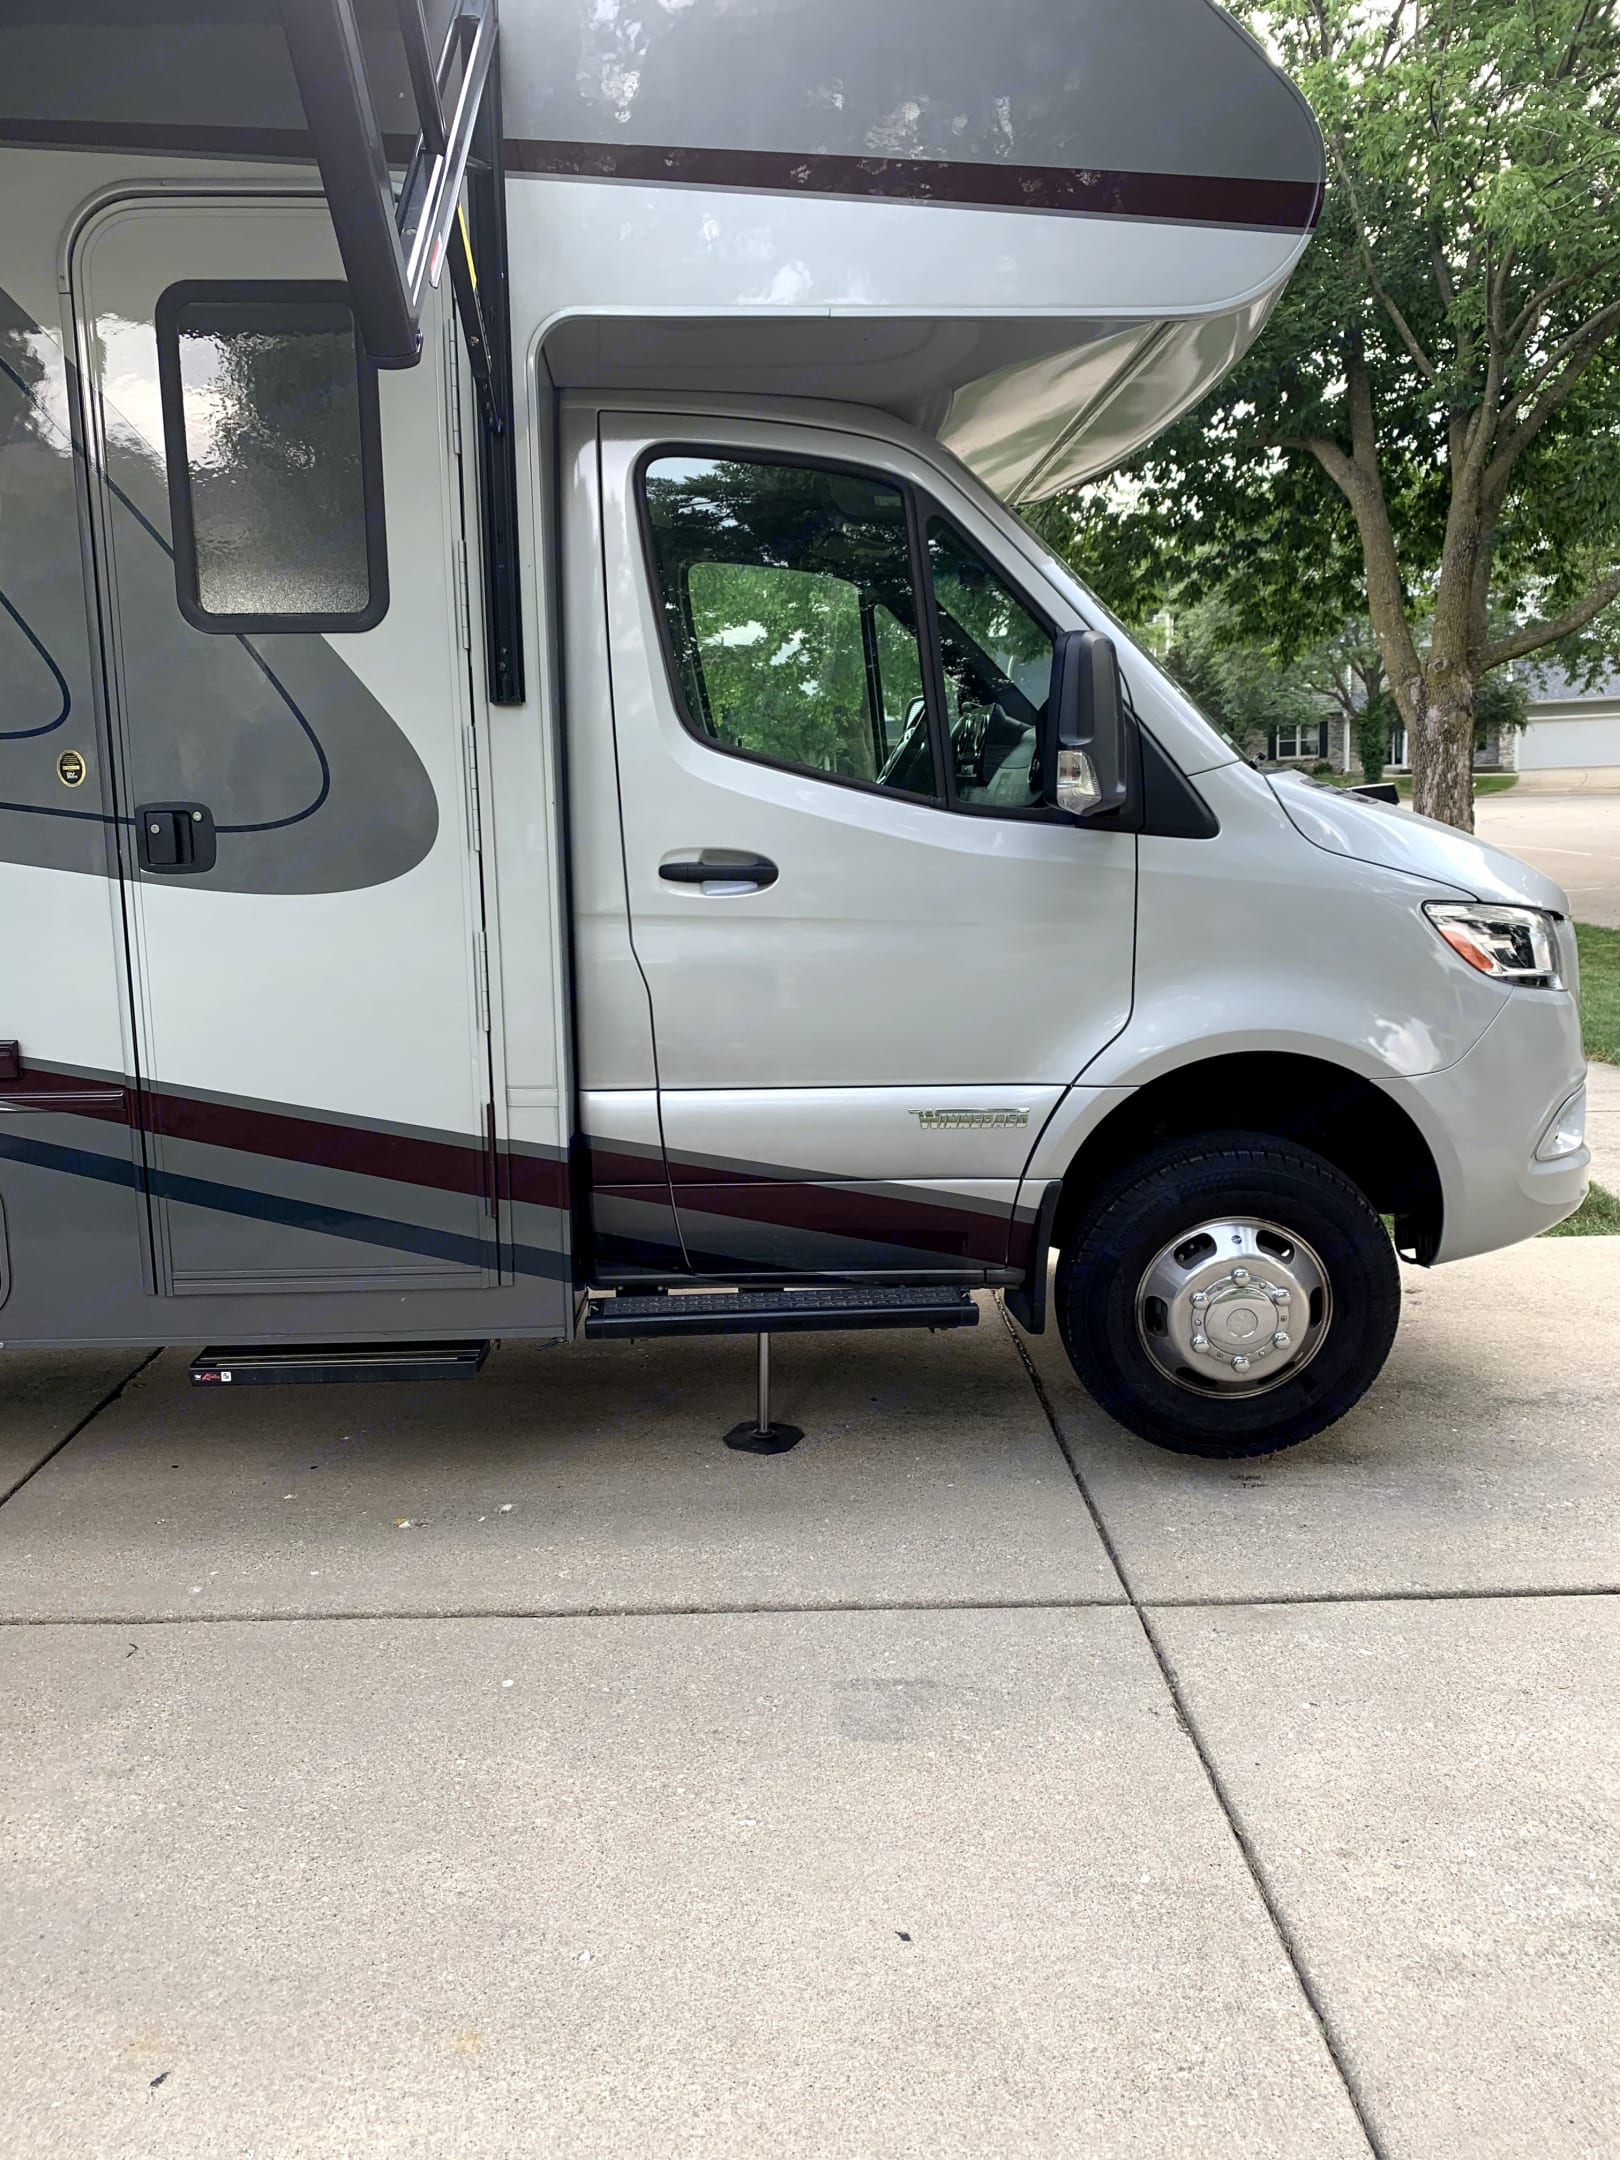 Parked and leveled - Passenger side. Winnebago View 2022